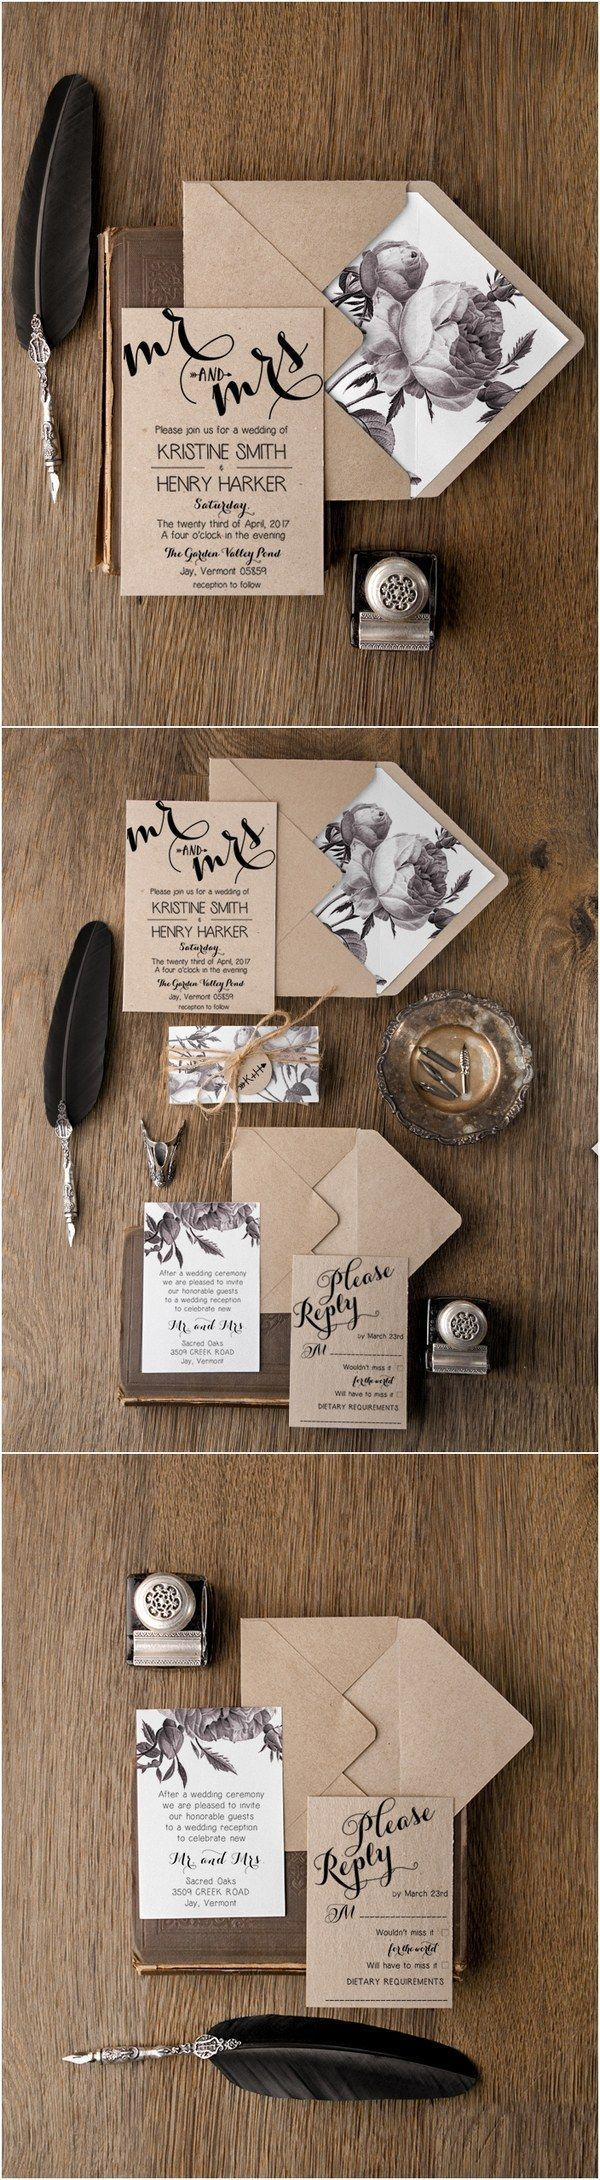 best cards images on pinterest bridal invitations card crafts